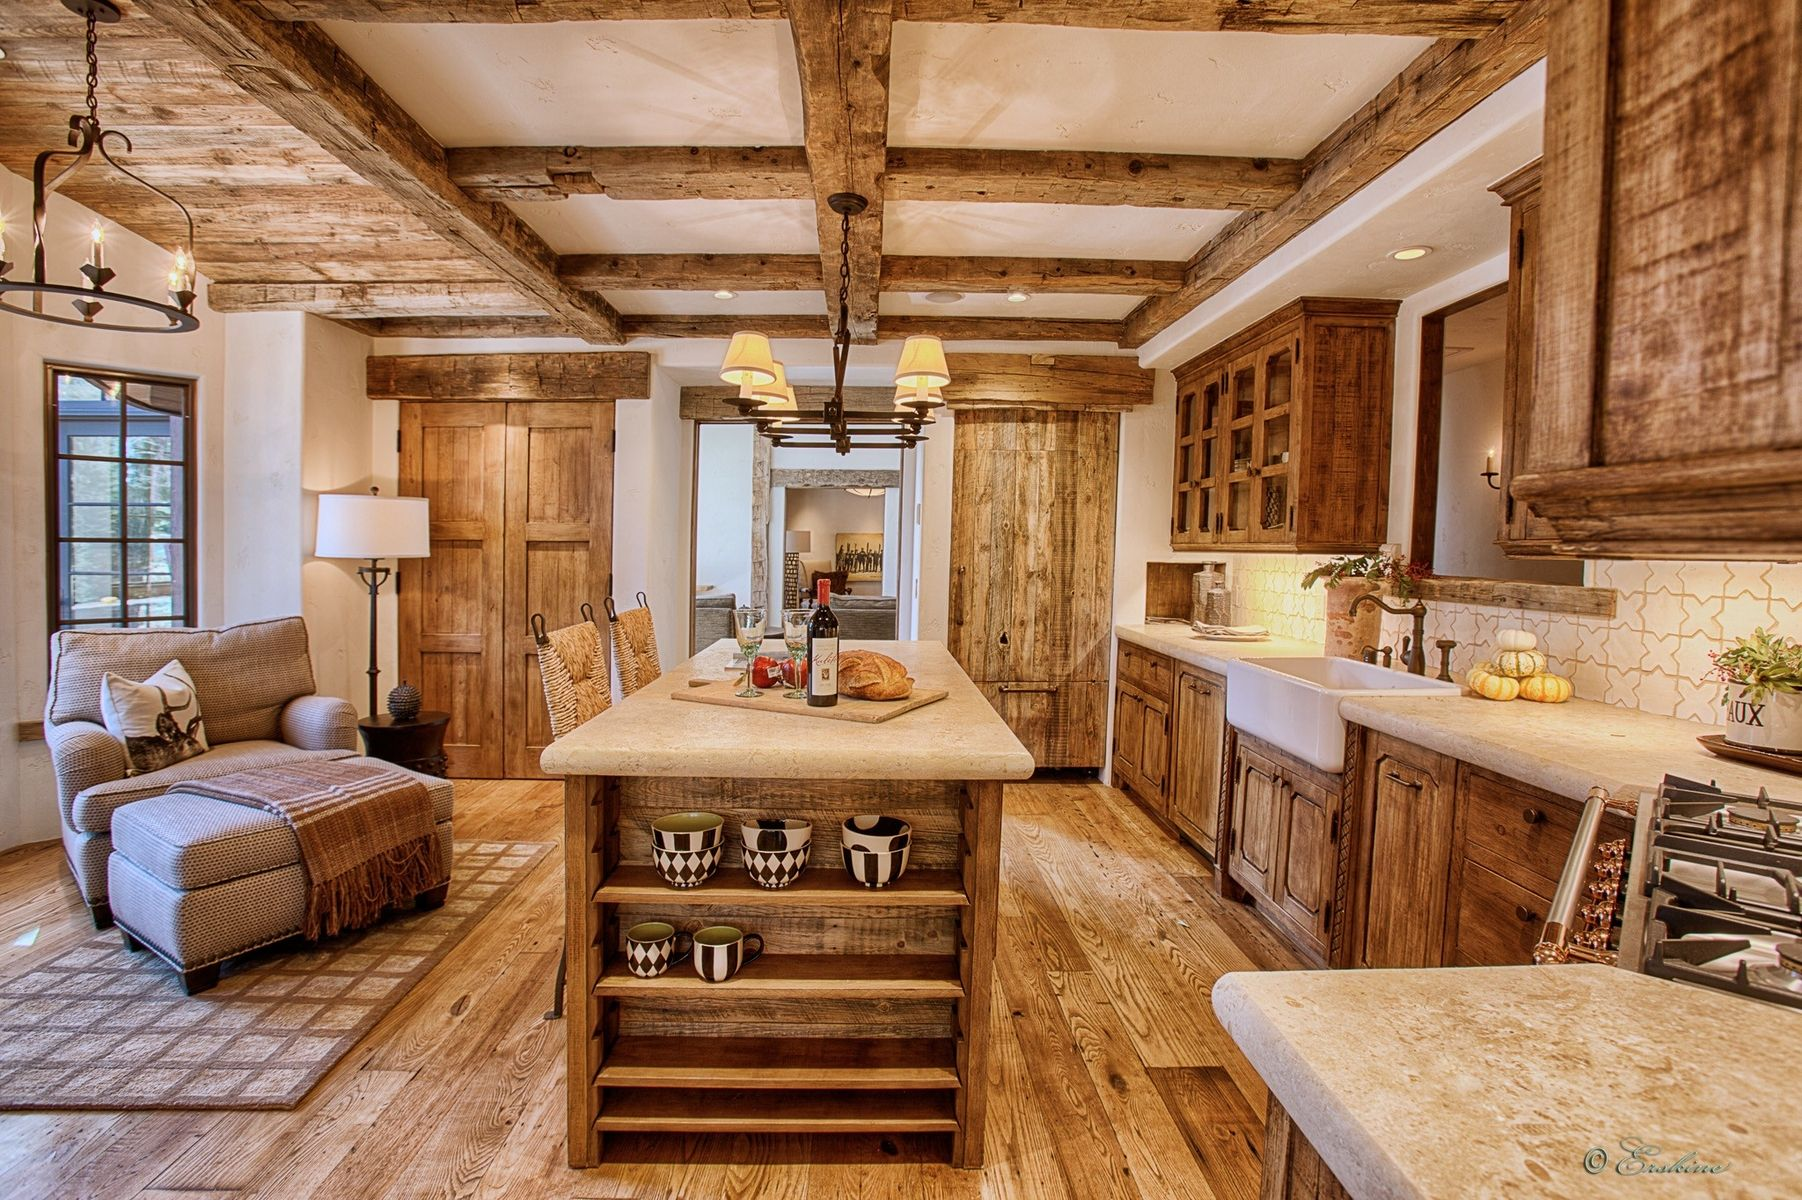 Custom Sugar Pine Kitchen Cabinetry By Bratt Brothers